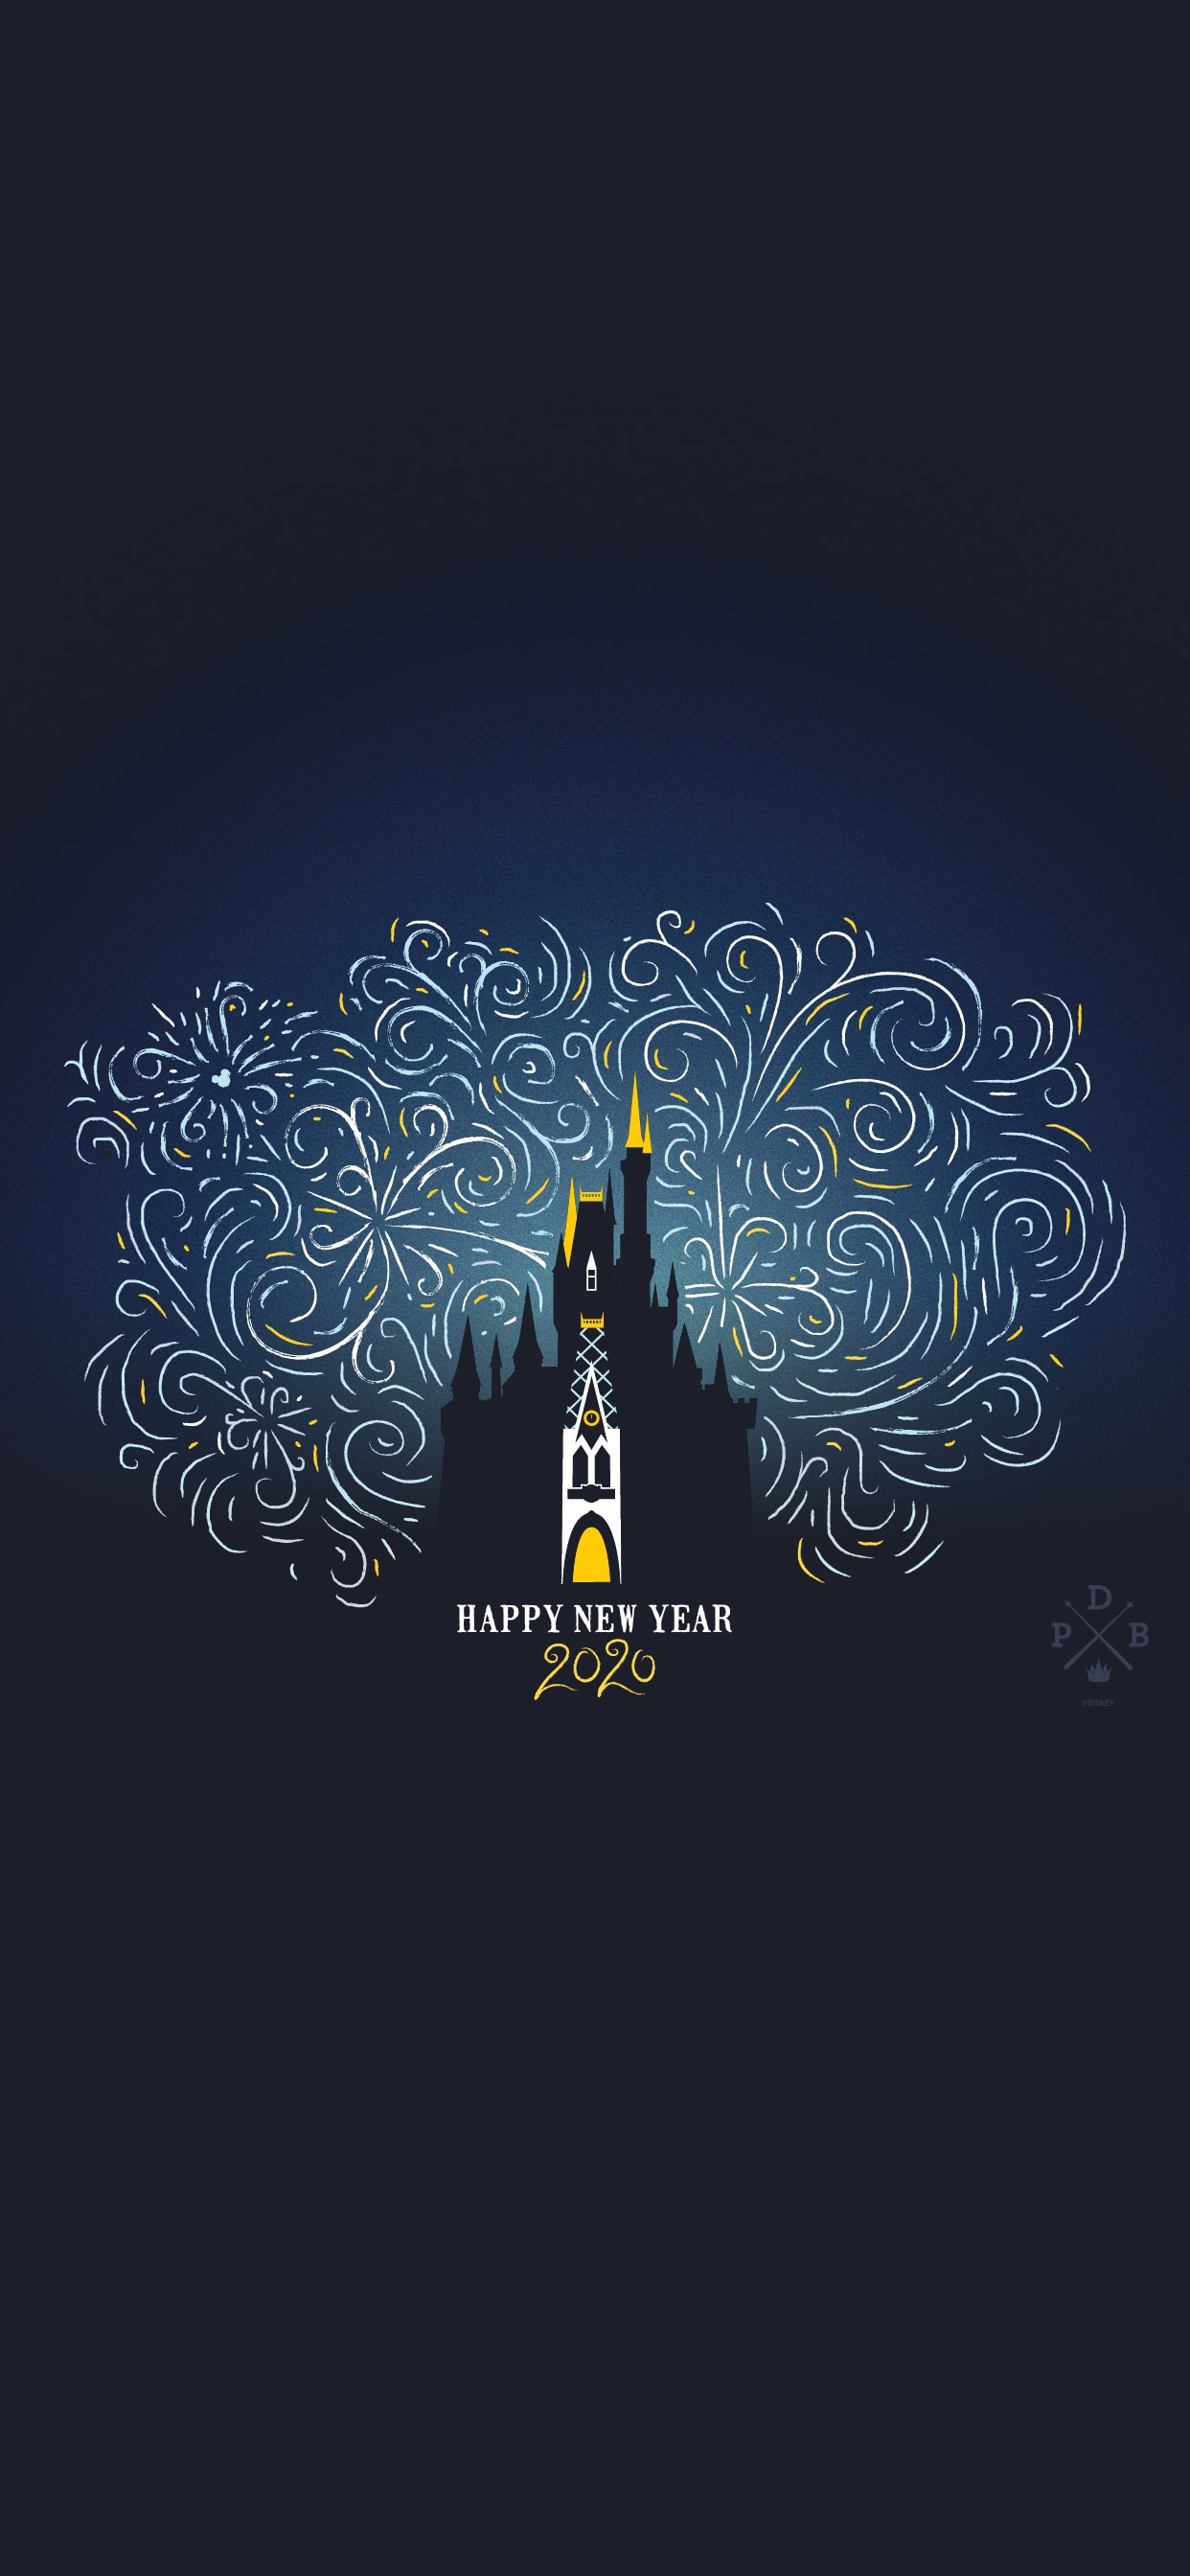 Happy 2020 Wallpaper Iphone Android Disney Parks Blog